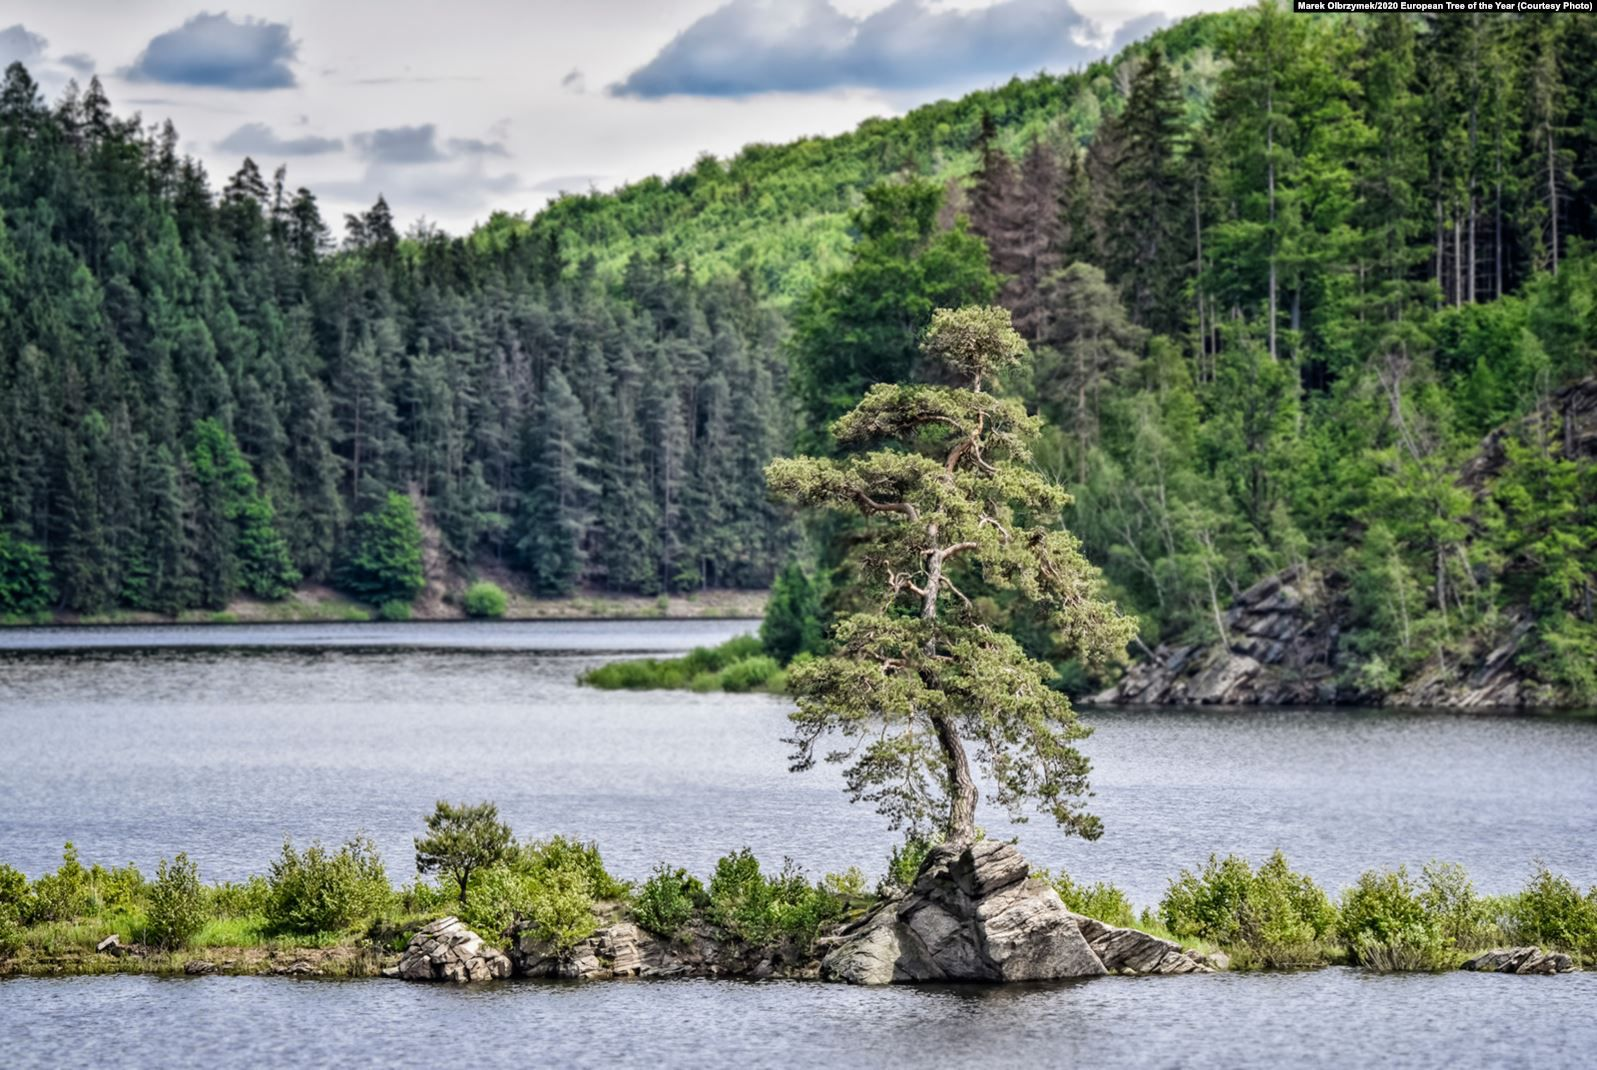 """This 350-year-old Scots pine -- dubbed the Guardian Of The Flooded Village -- was voted European Tree Of The Year for 2020 by the Environmental Partnership Association (EPA) and the European Landowners' Organization. The tree is located near the Czech village of Chudobin, which was flooded due to the construction of a dam. Local legend has it that a devil sits under the tree and plays the violin at night. According to the EPA, the tree """"is not only an important landmark but also an impressive testimony to its high resistance to climate change and human impact."""""""